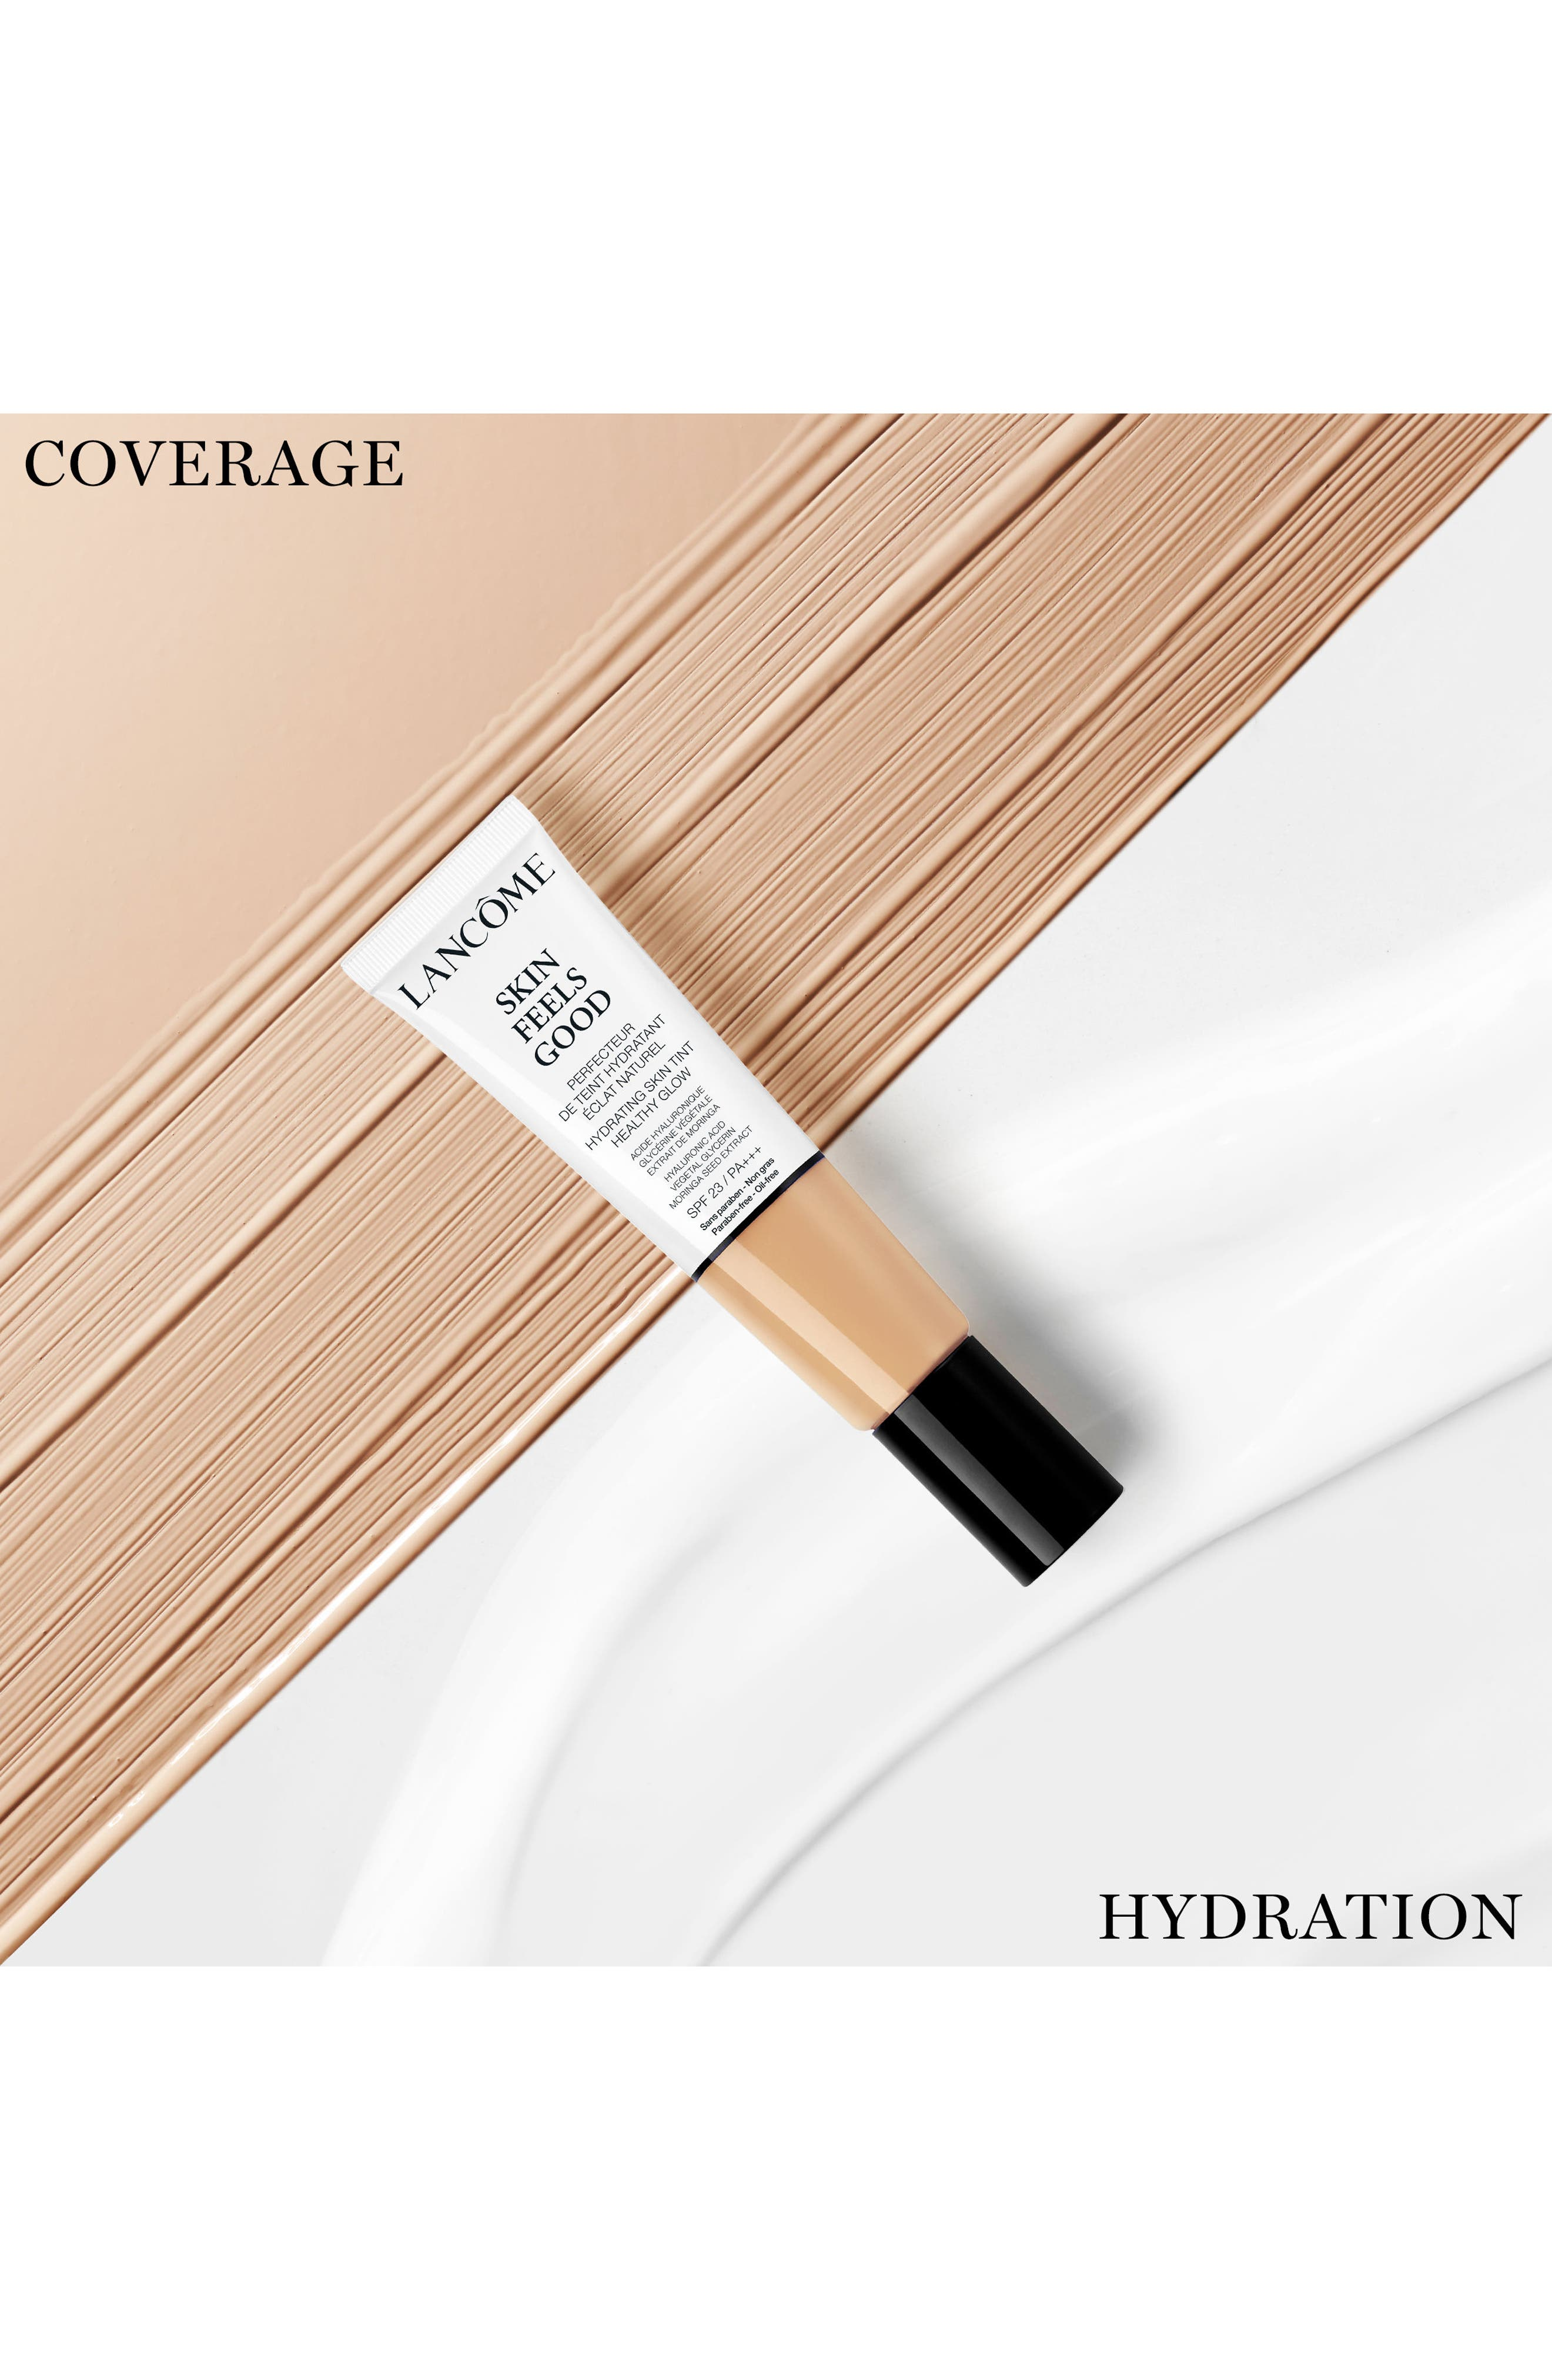 Skin Feels Good Hydrating Skin Tint Healthy Glow SPF 23,                             Alternate thumbnail 5, color,